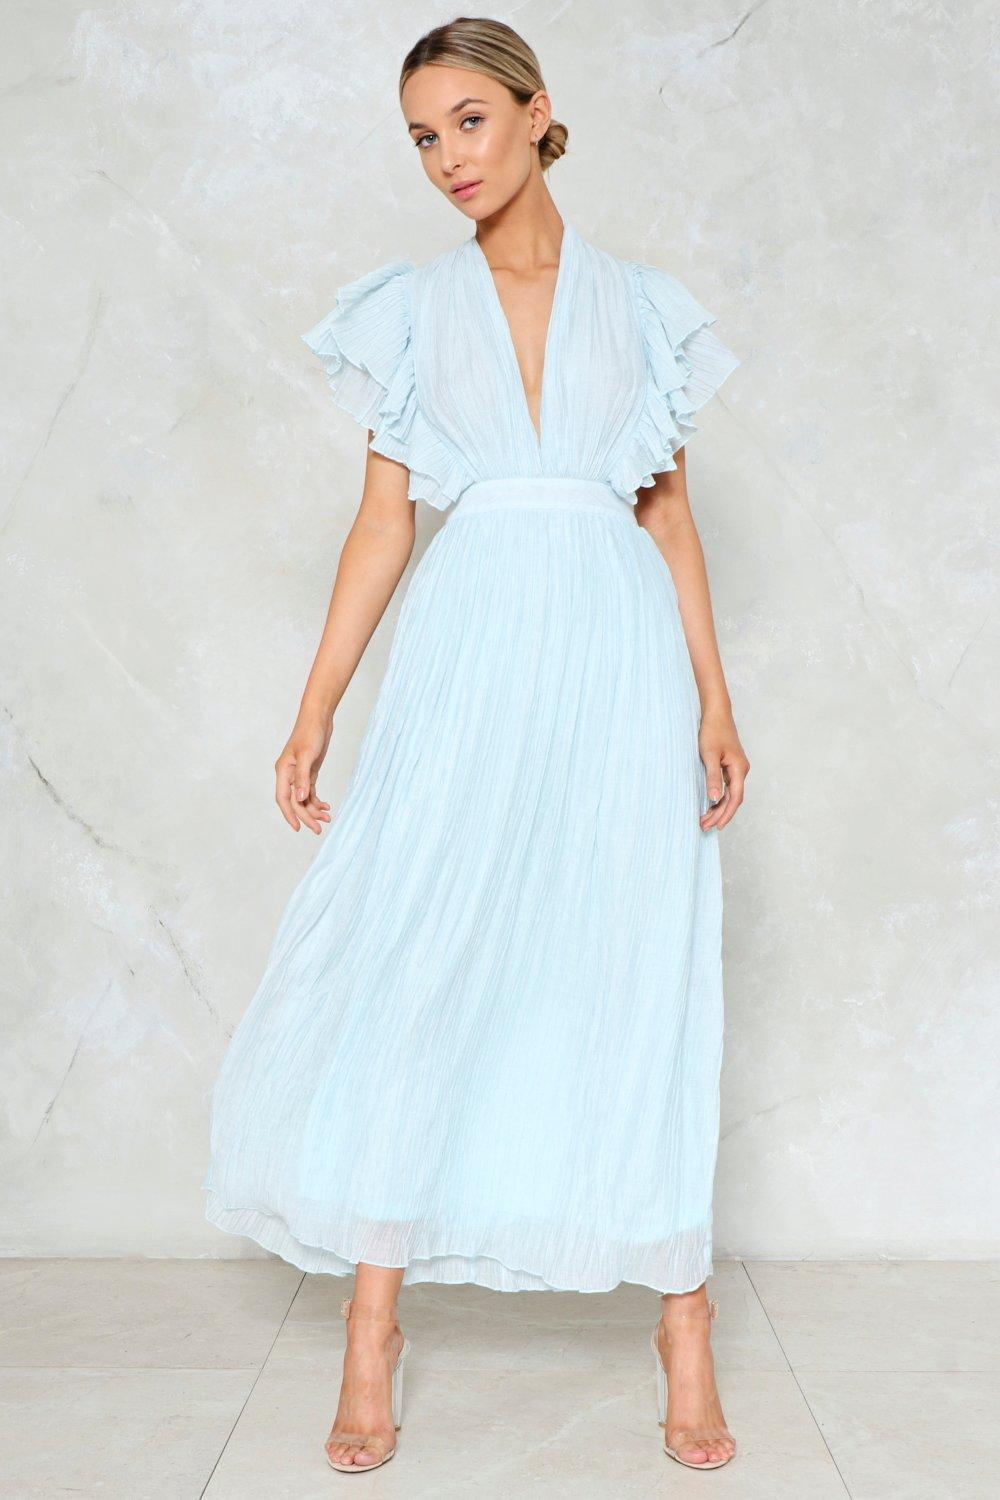 Pleated dress the pleat is on maxi dress YOIUAHM